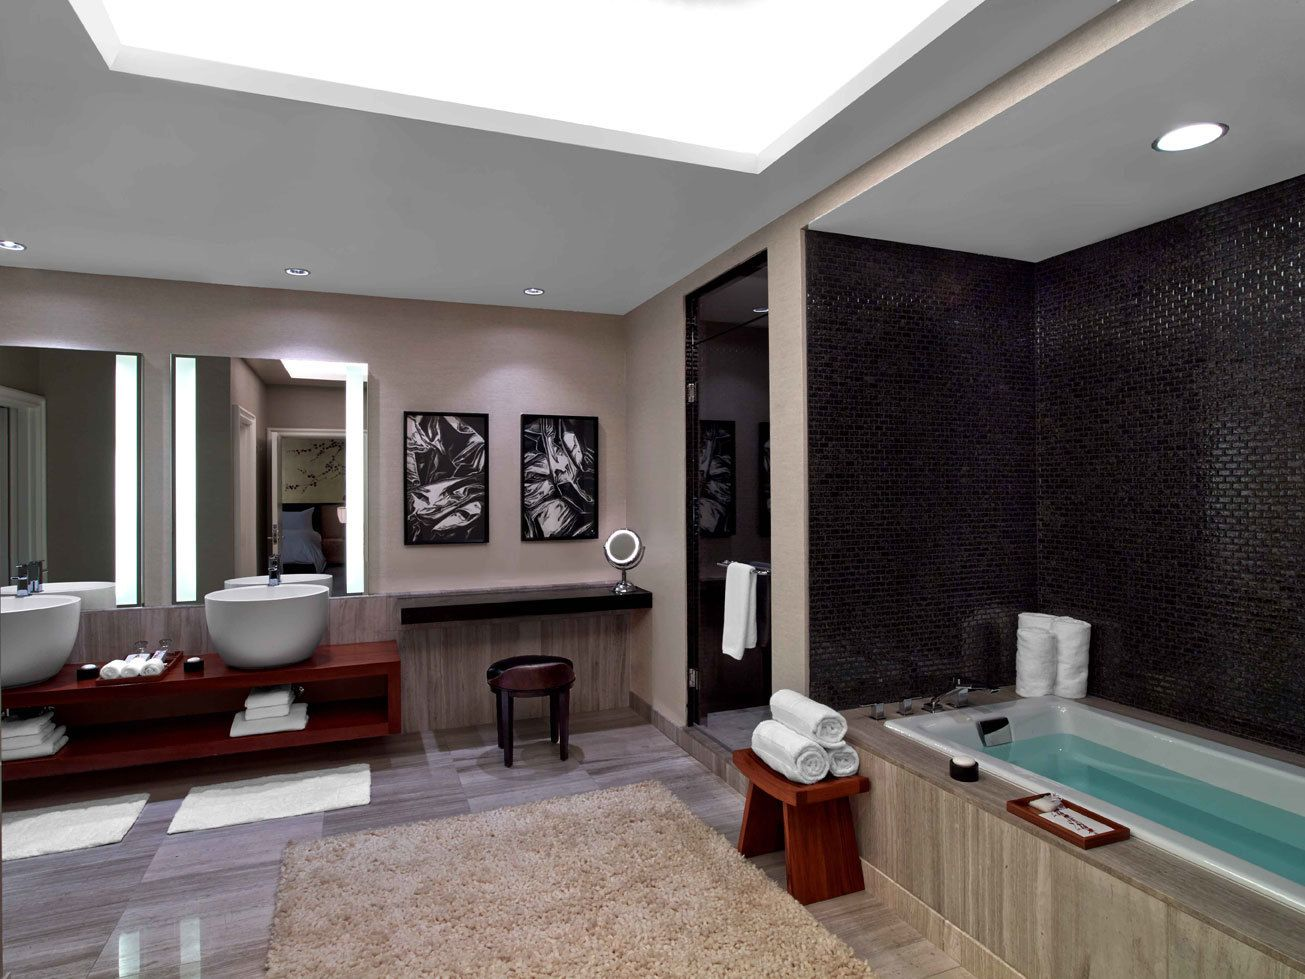 Spa Bathroom Suites Stay At Nobu At Caesarspalace In Vegas Inside The Hakone